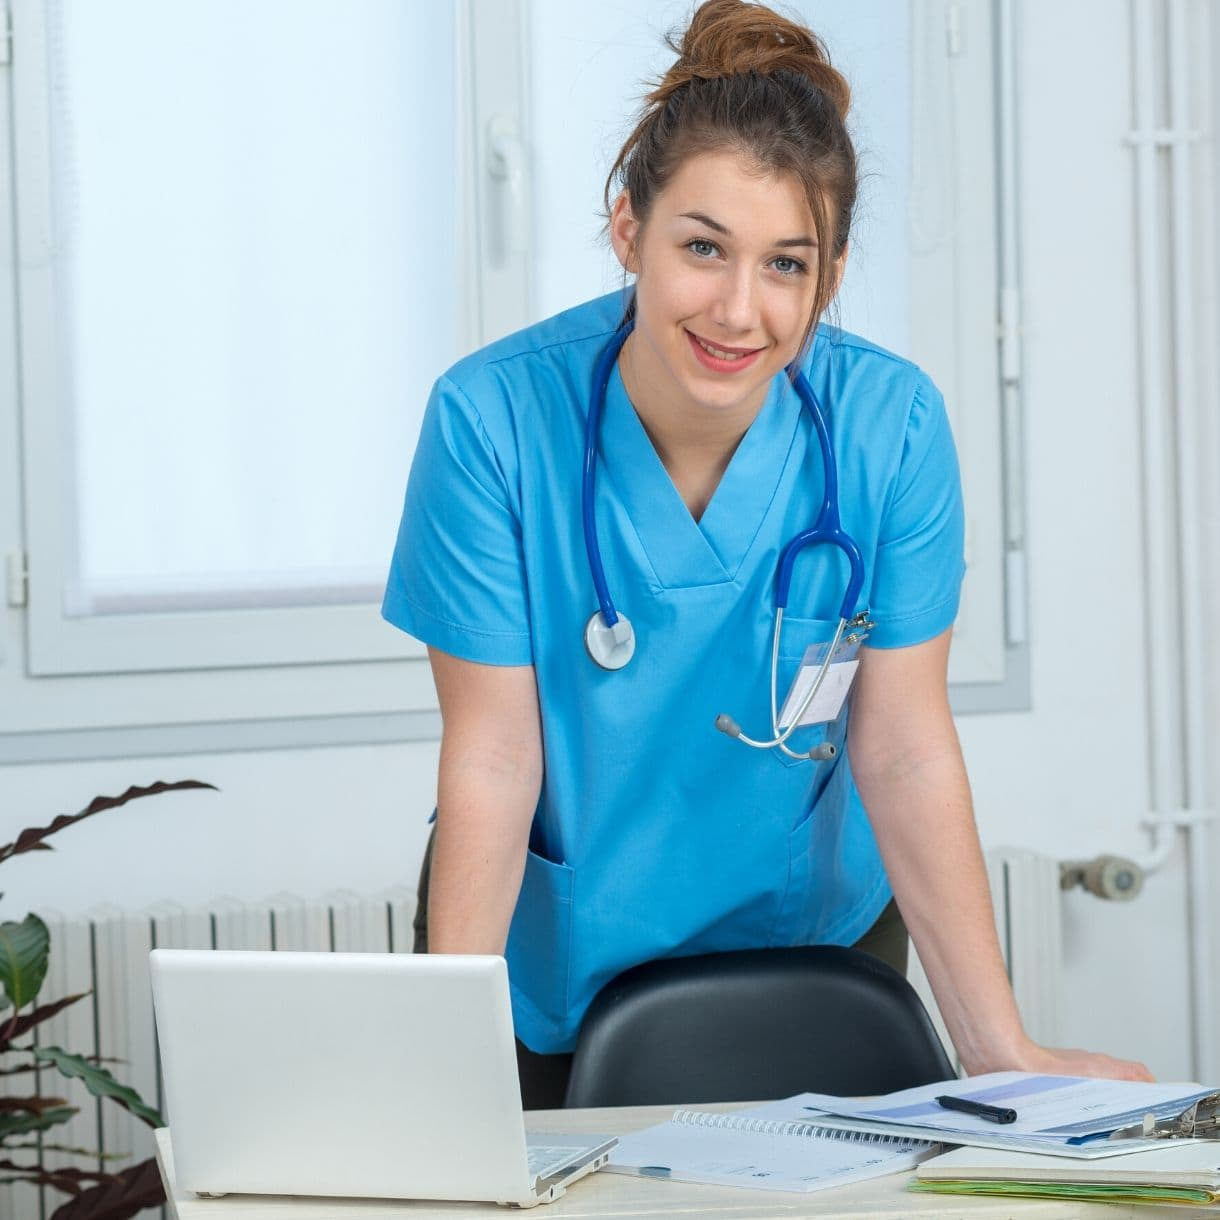 Benefits of migrating to Canada as a Nurse